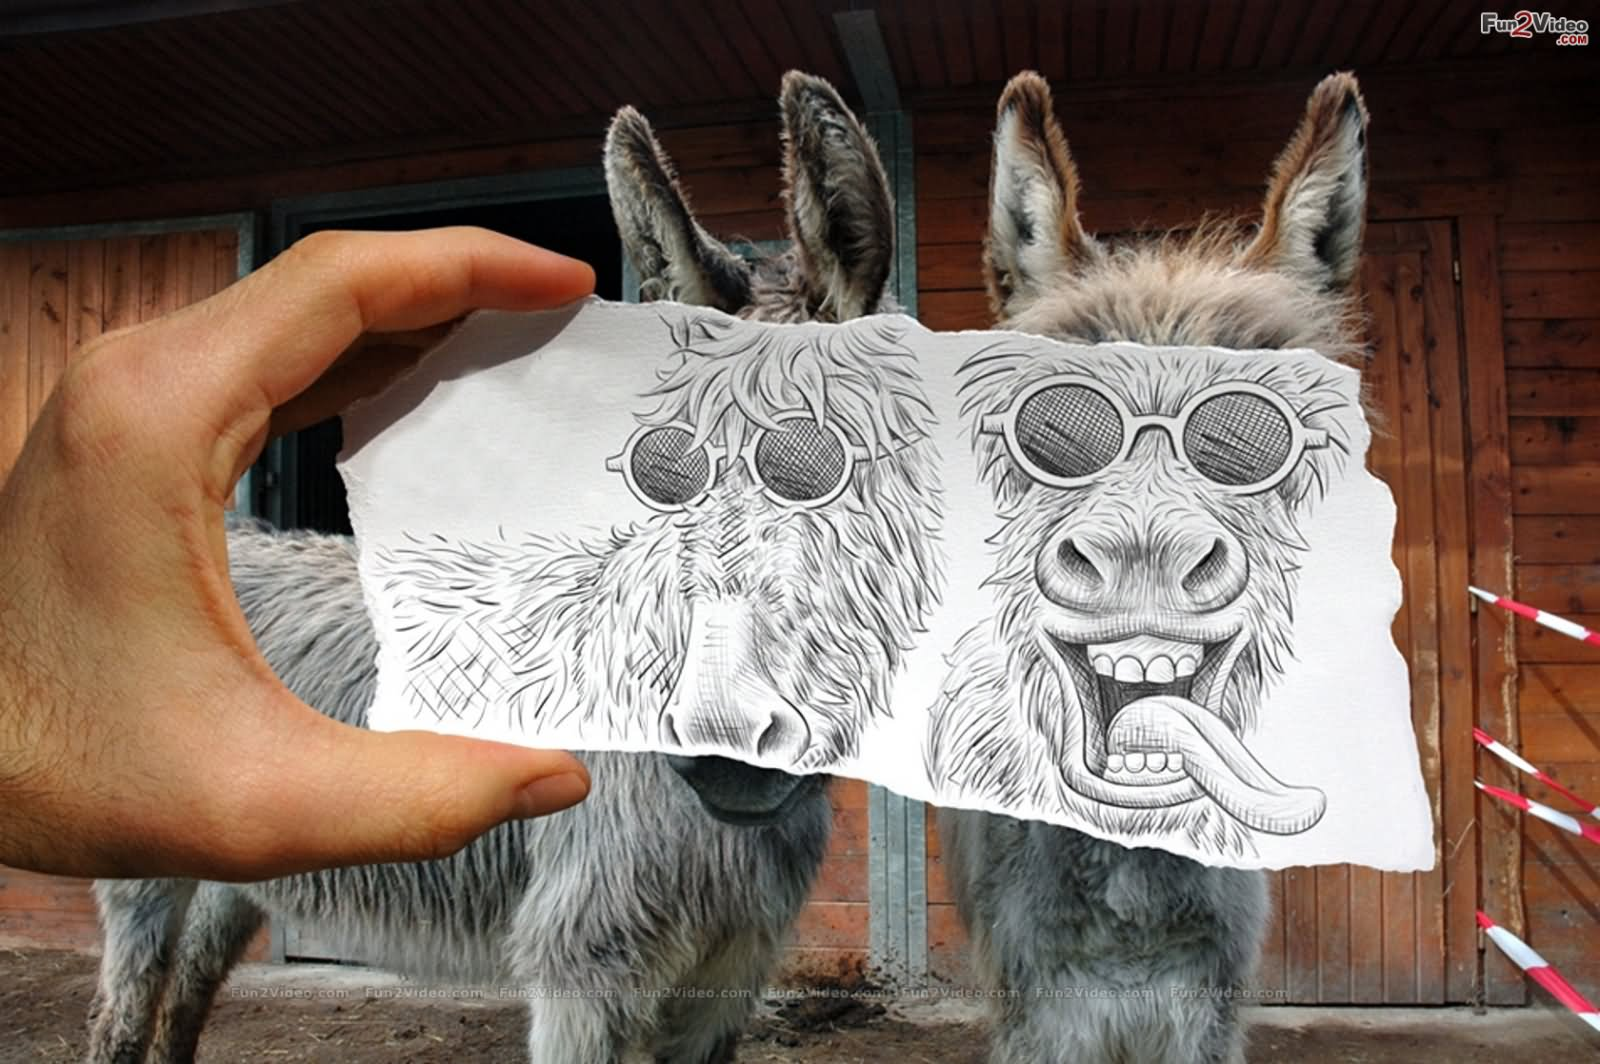 15 Most Funny Donkey Face Pictures That Will Make You Laugh